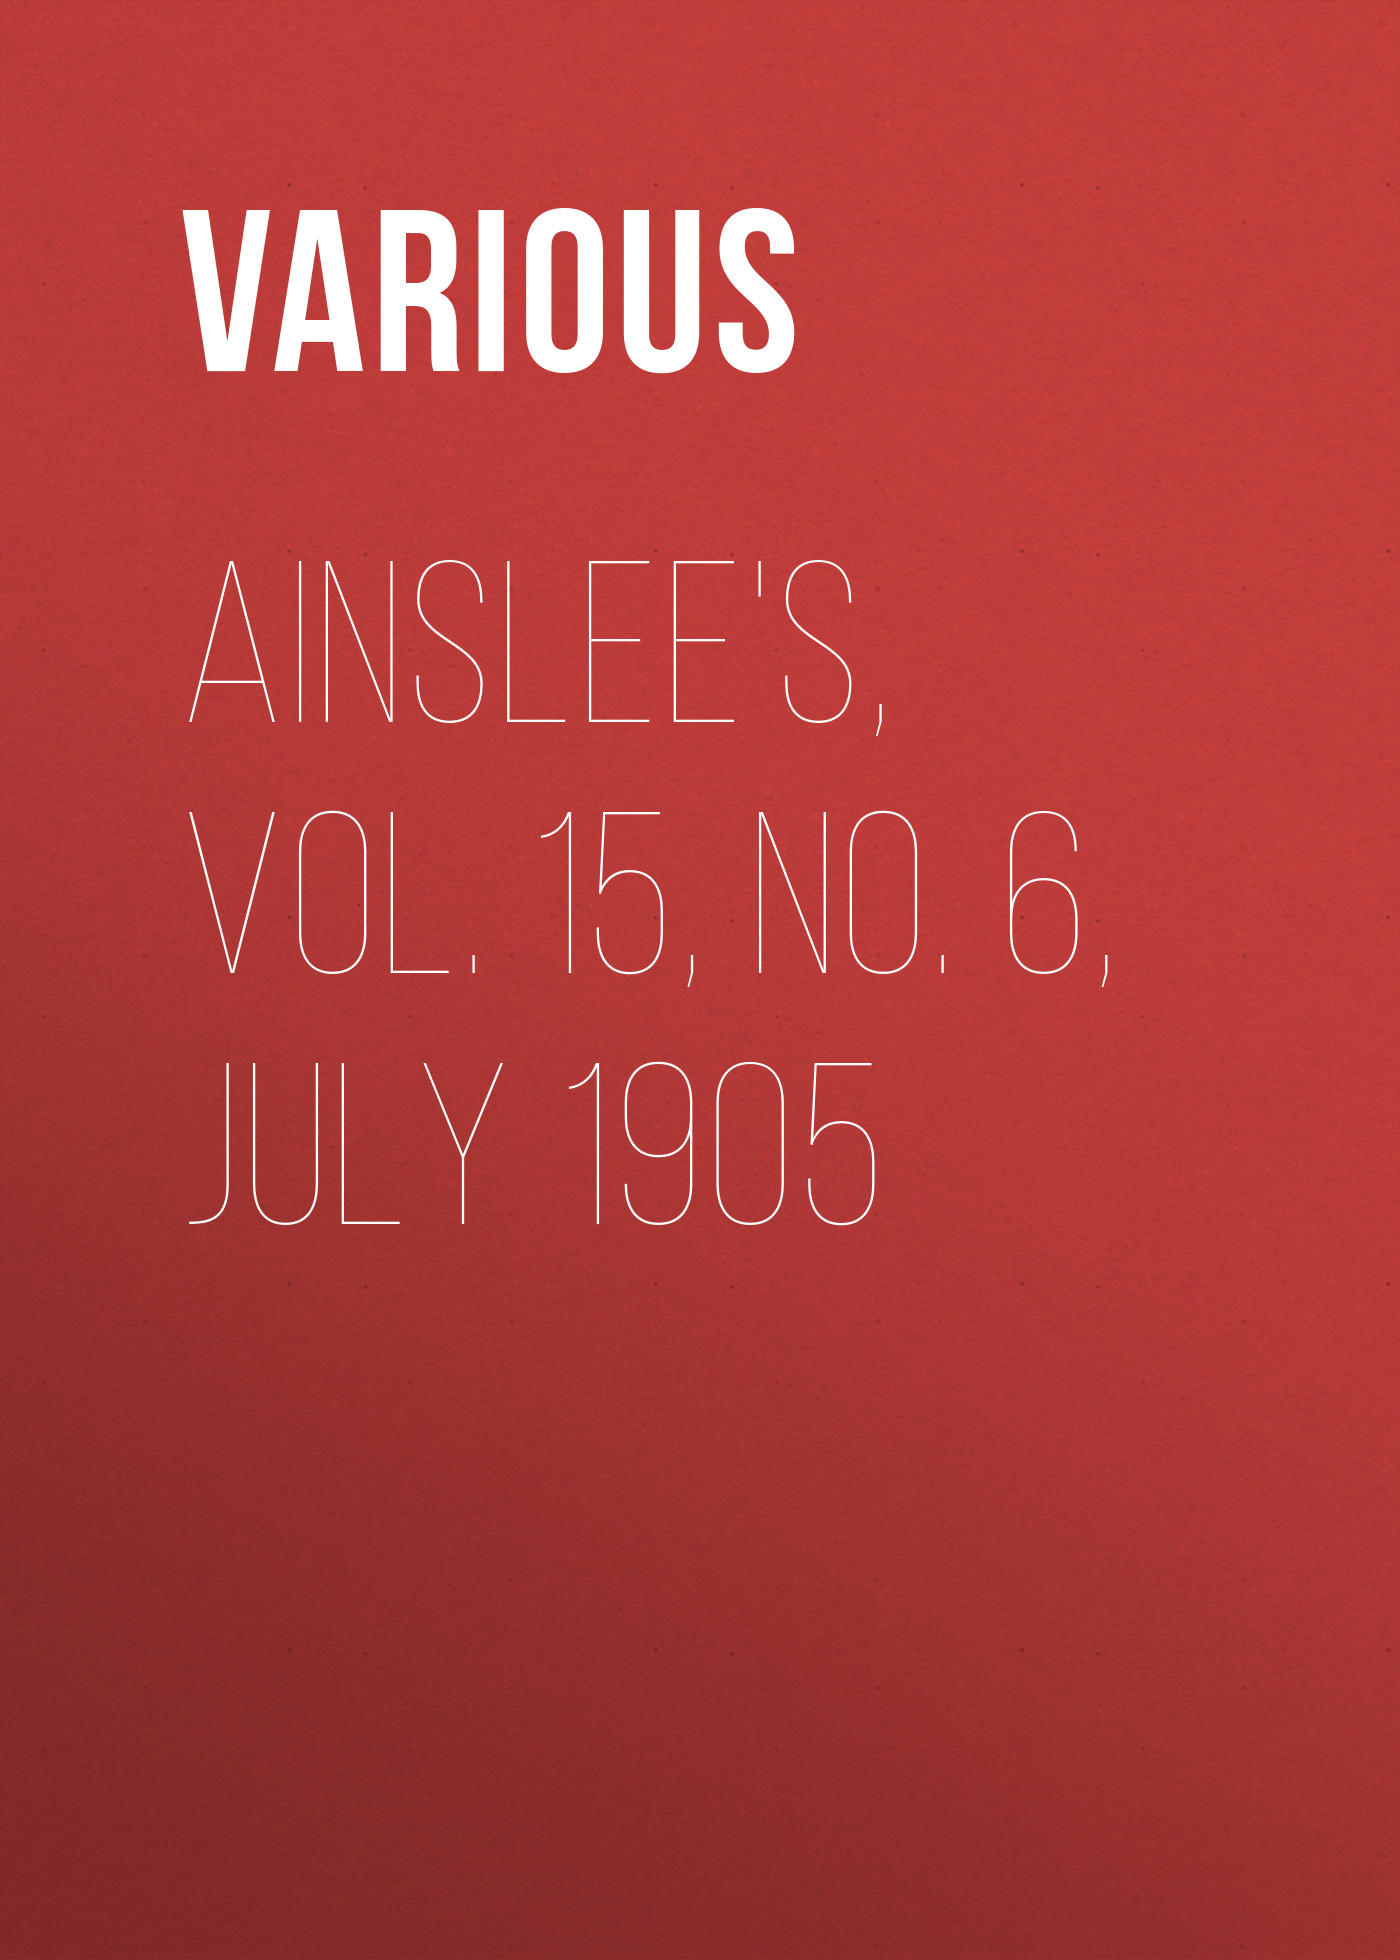 Various Ainslee's, Vol. 15, No. 6, July 1905 fear agent vol 6 2nd edition